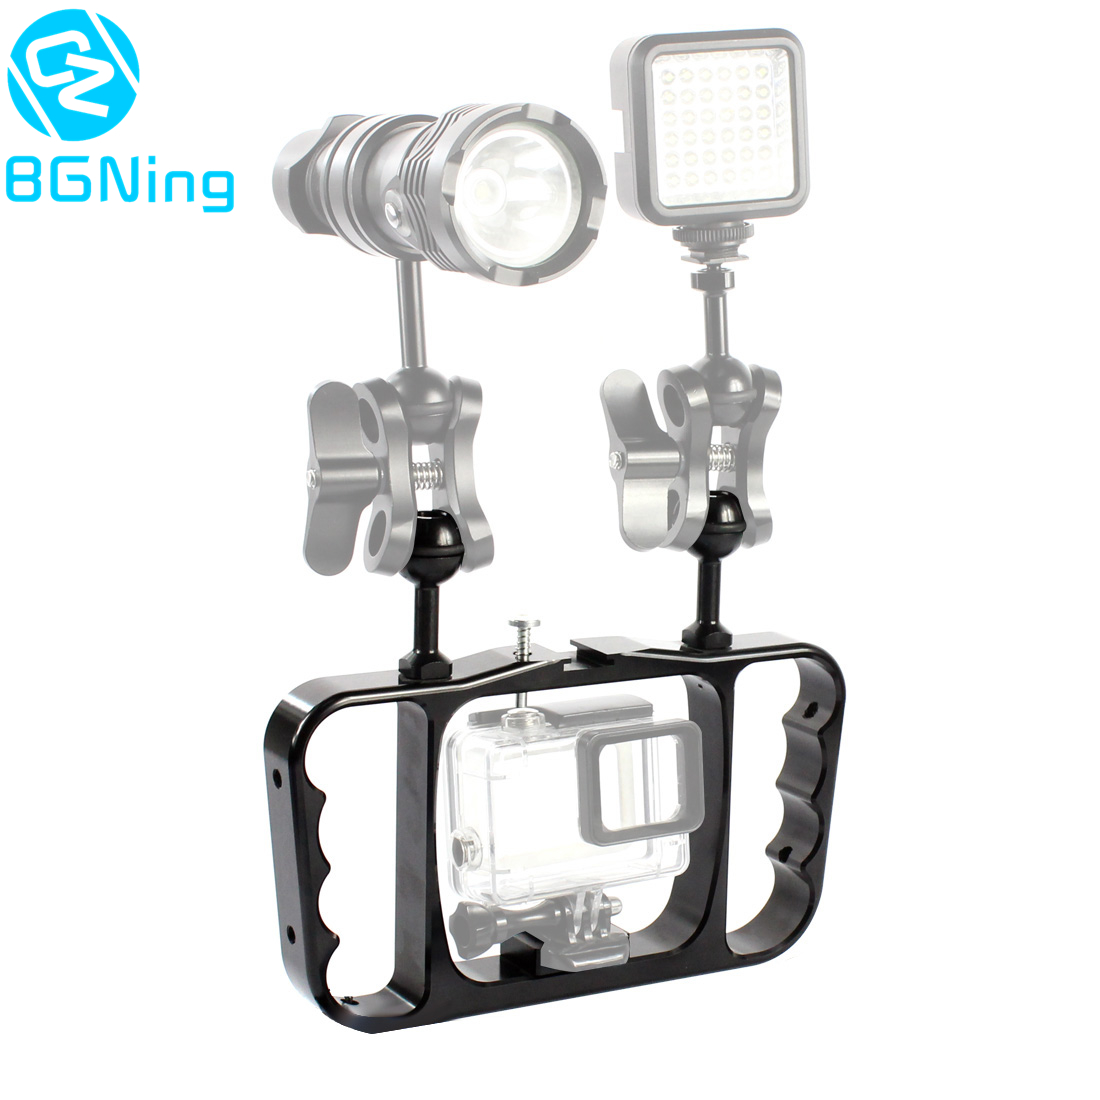 Dual Handle Scuba Diving Bracket Flash Light Mounting Frame Kit for Gopro Hero 7 6 5 4 SJCAM Sony Camera Camcorder Smartphone-in Sports Camcorder Cases from Consumer Electronics